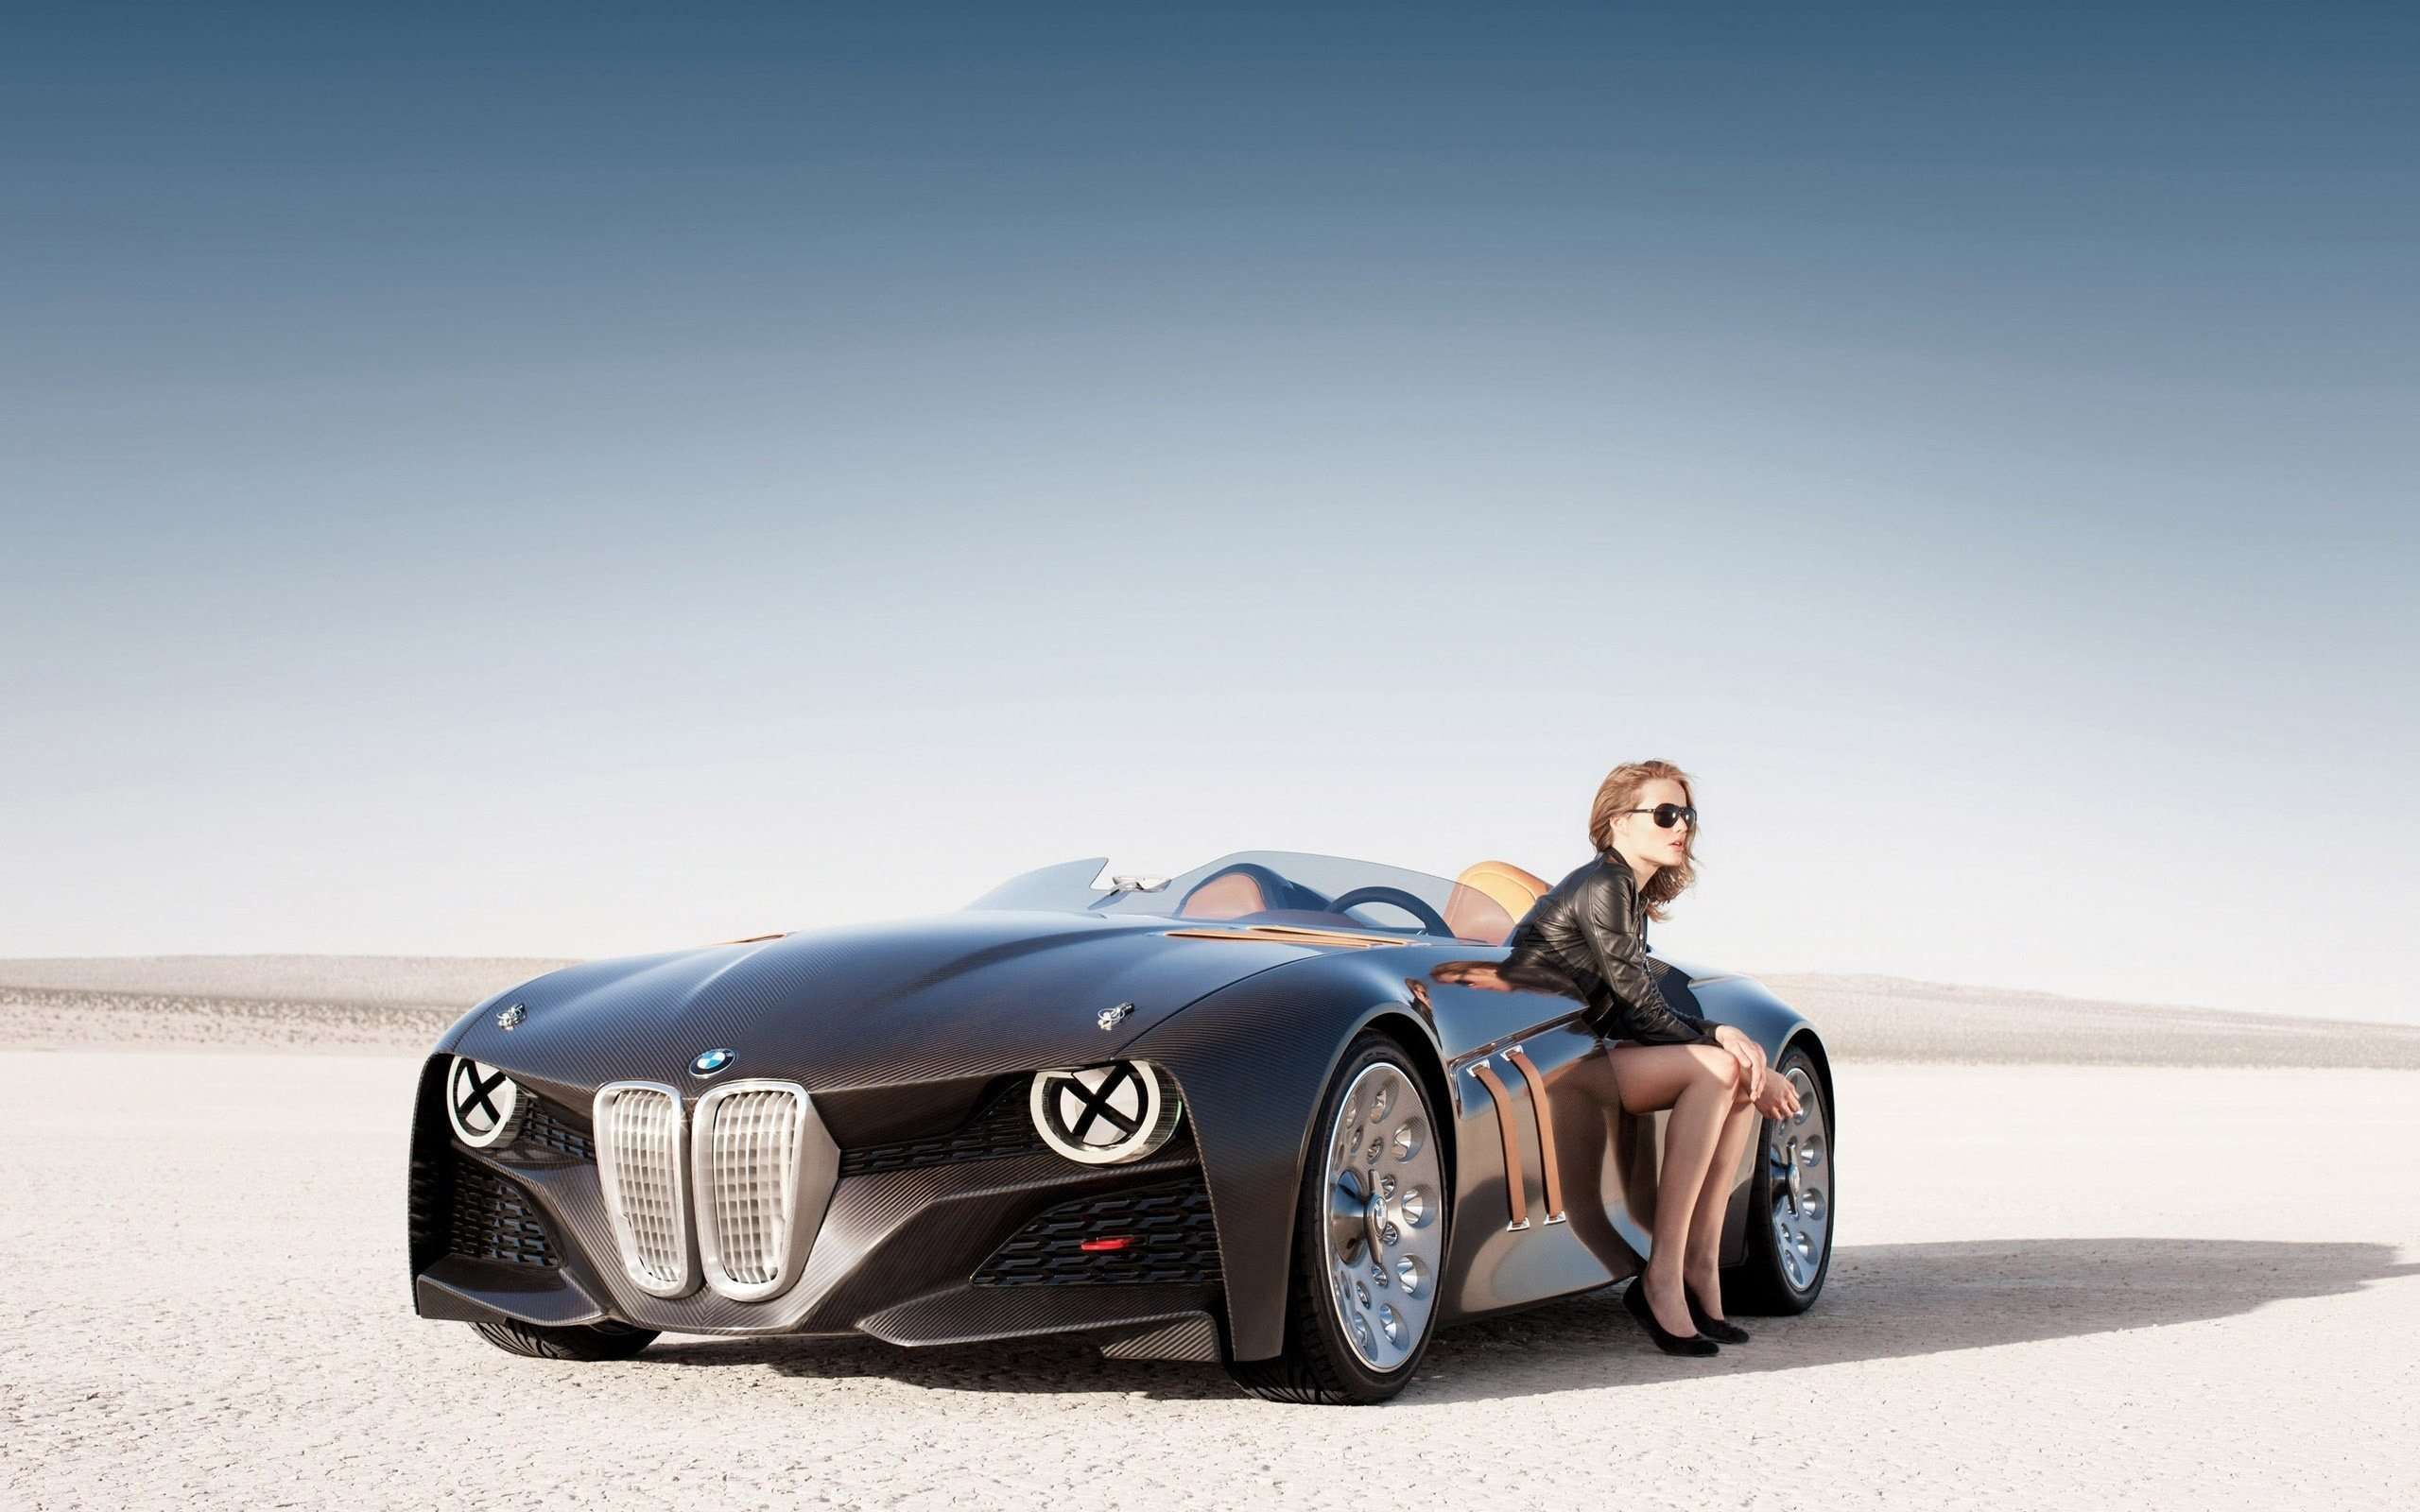 Super Bmw Super Girl Wallpapers Hd Wallpapers Source Bmw 328 Bmw Concept Concept Cars